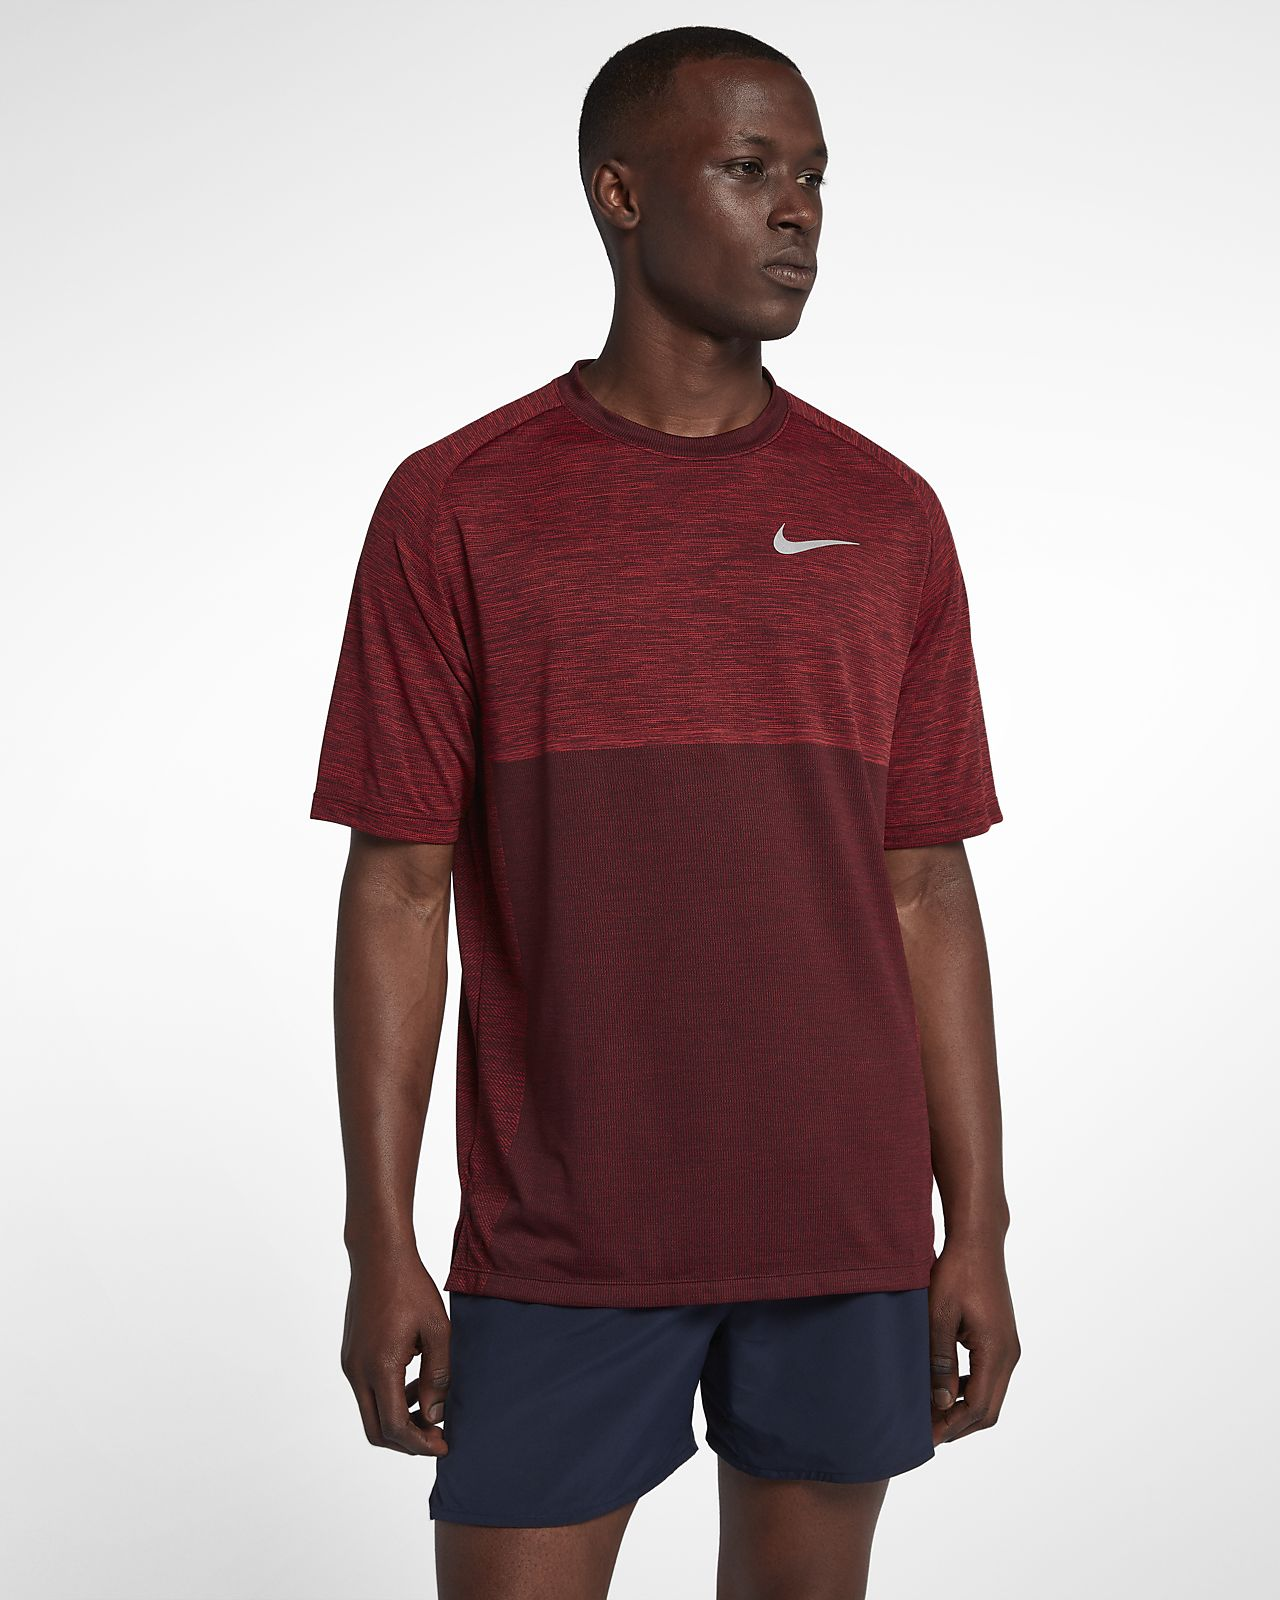 6770fb13a824e9 Nike Dri-FIT Medalist Men s Short-Sleeve Running Top. Nike.com CH